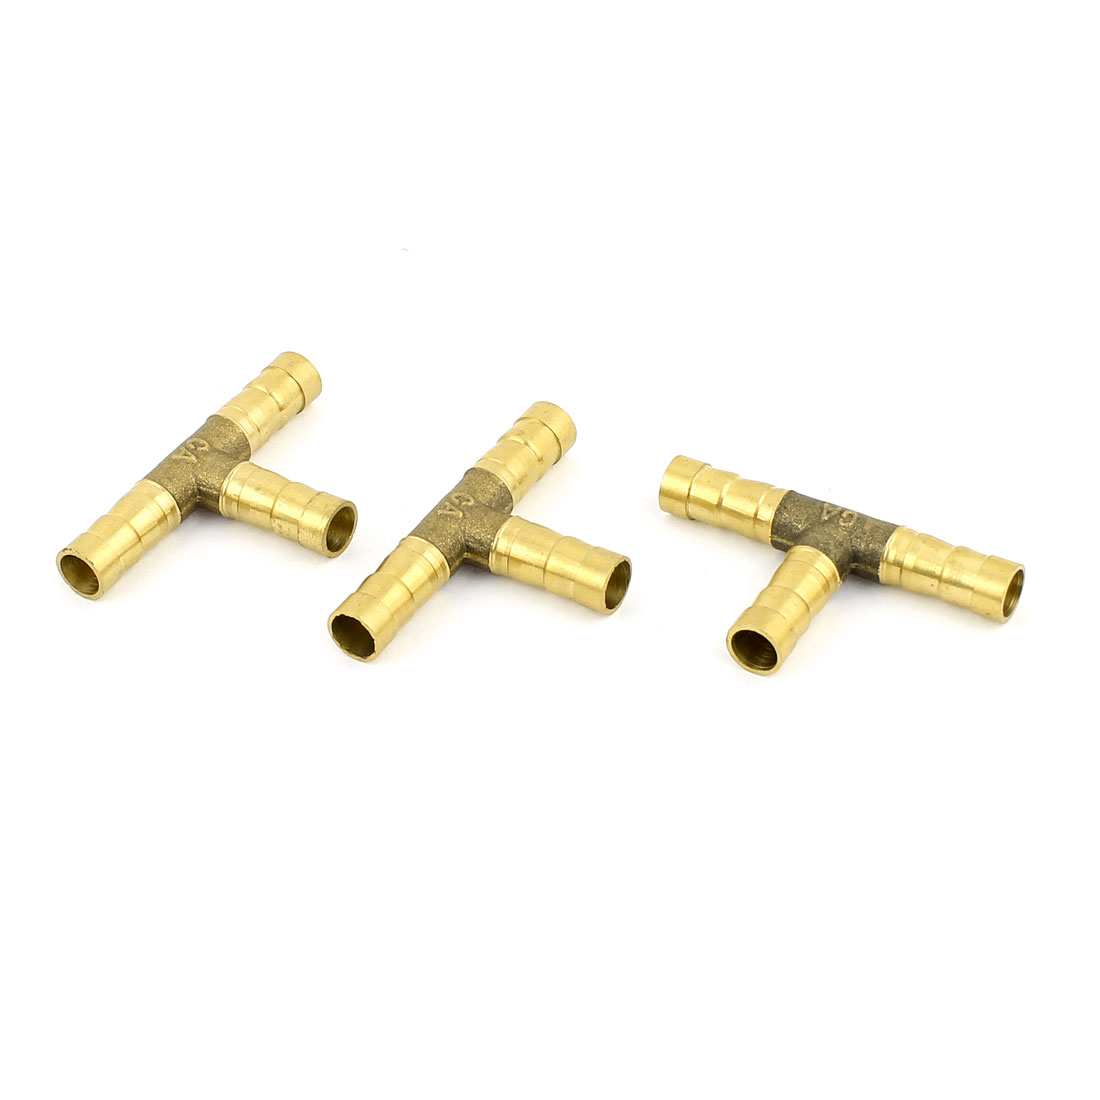 3Pcs 3 Way T-Shaped 8mm Tube Connector Brass Fuel Hose Barb Fittings